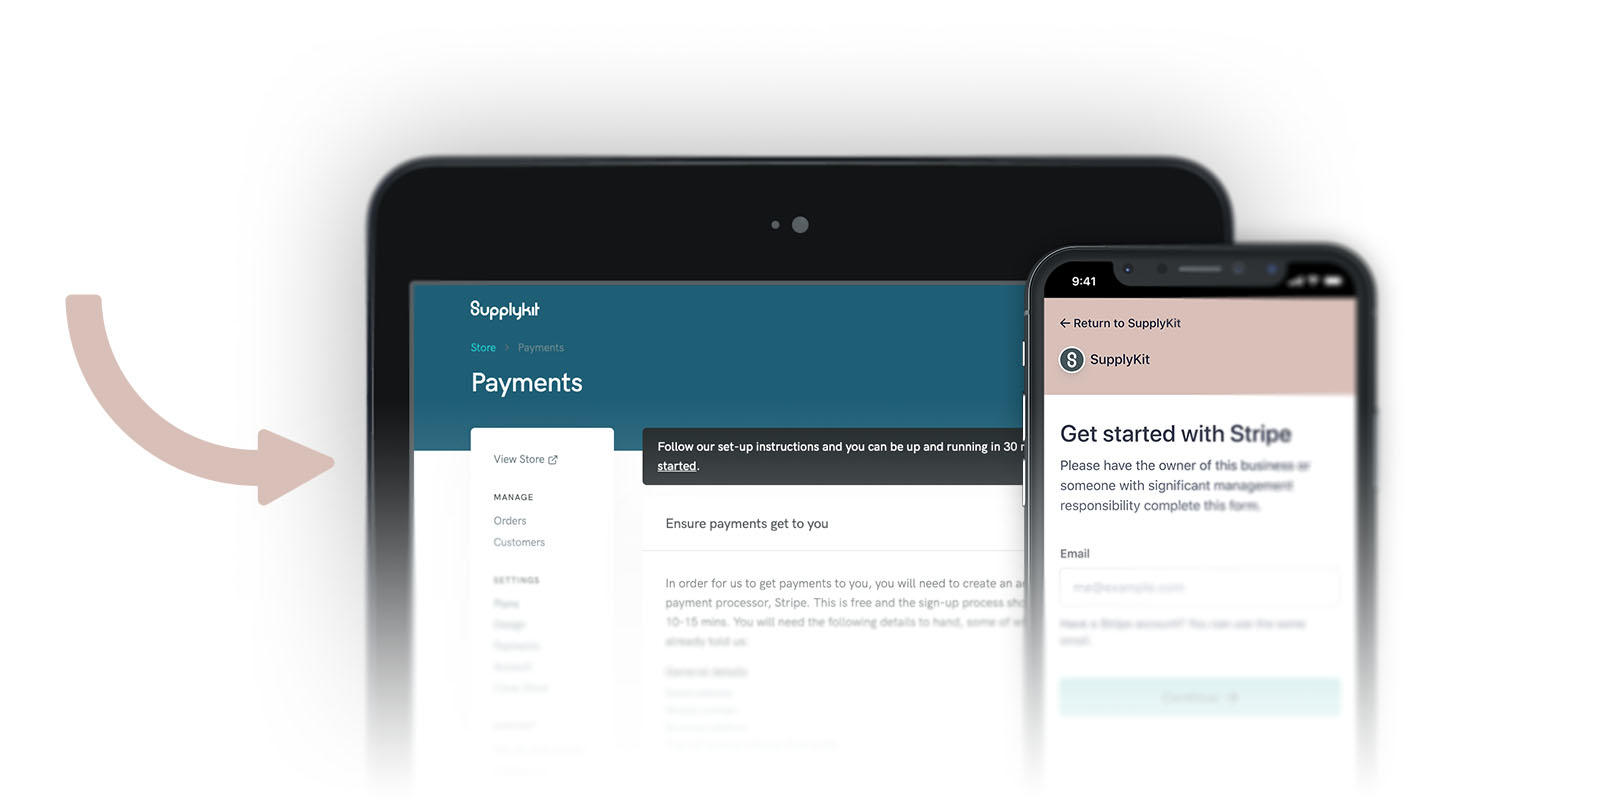 Ensure payments get to you